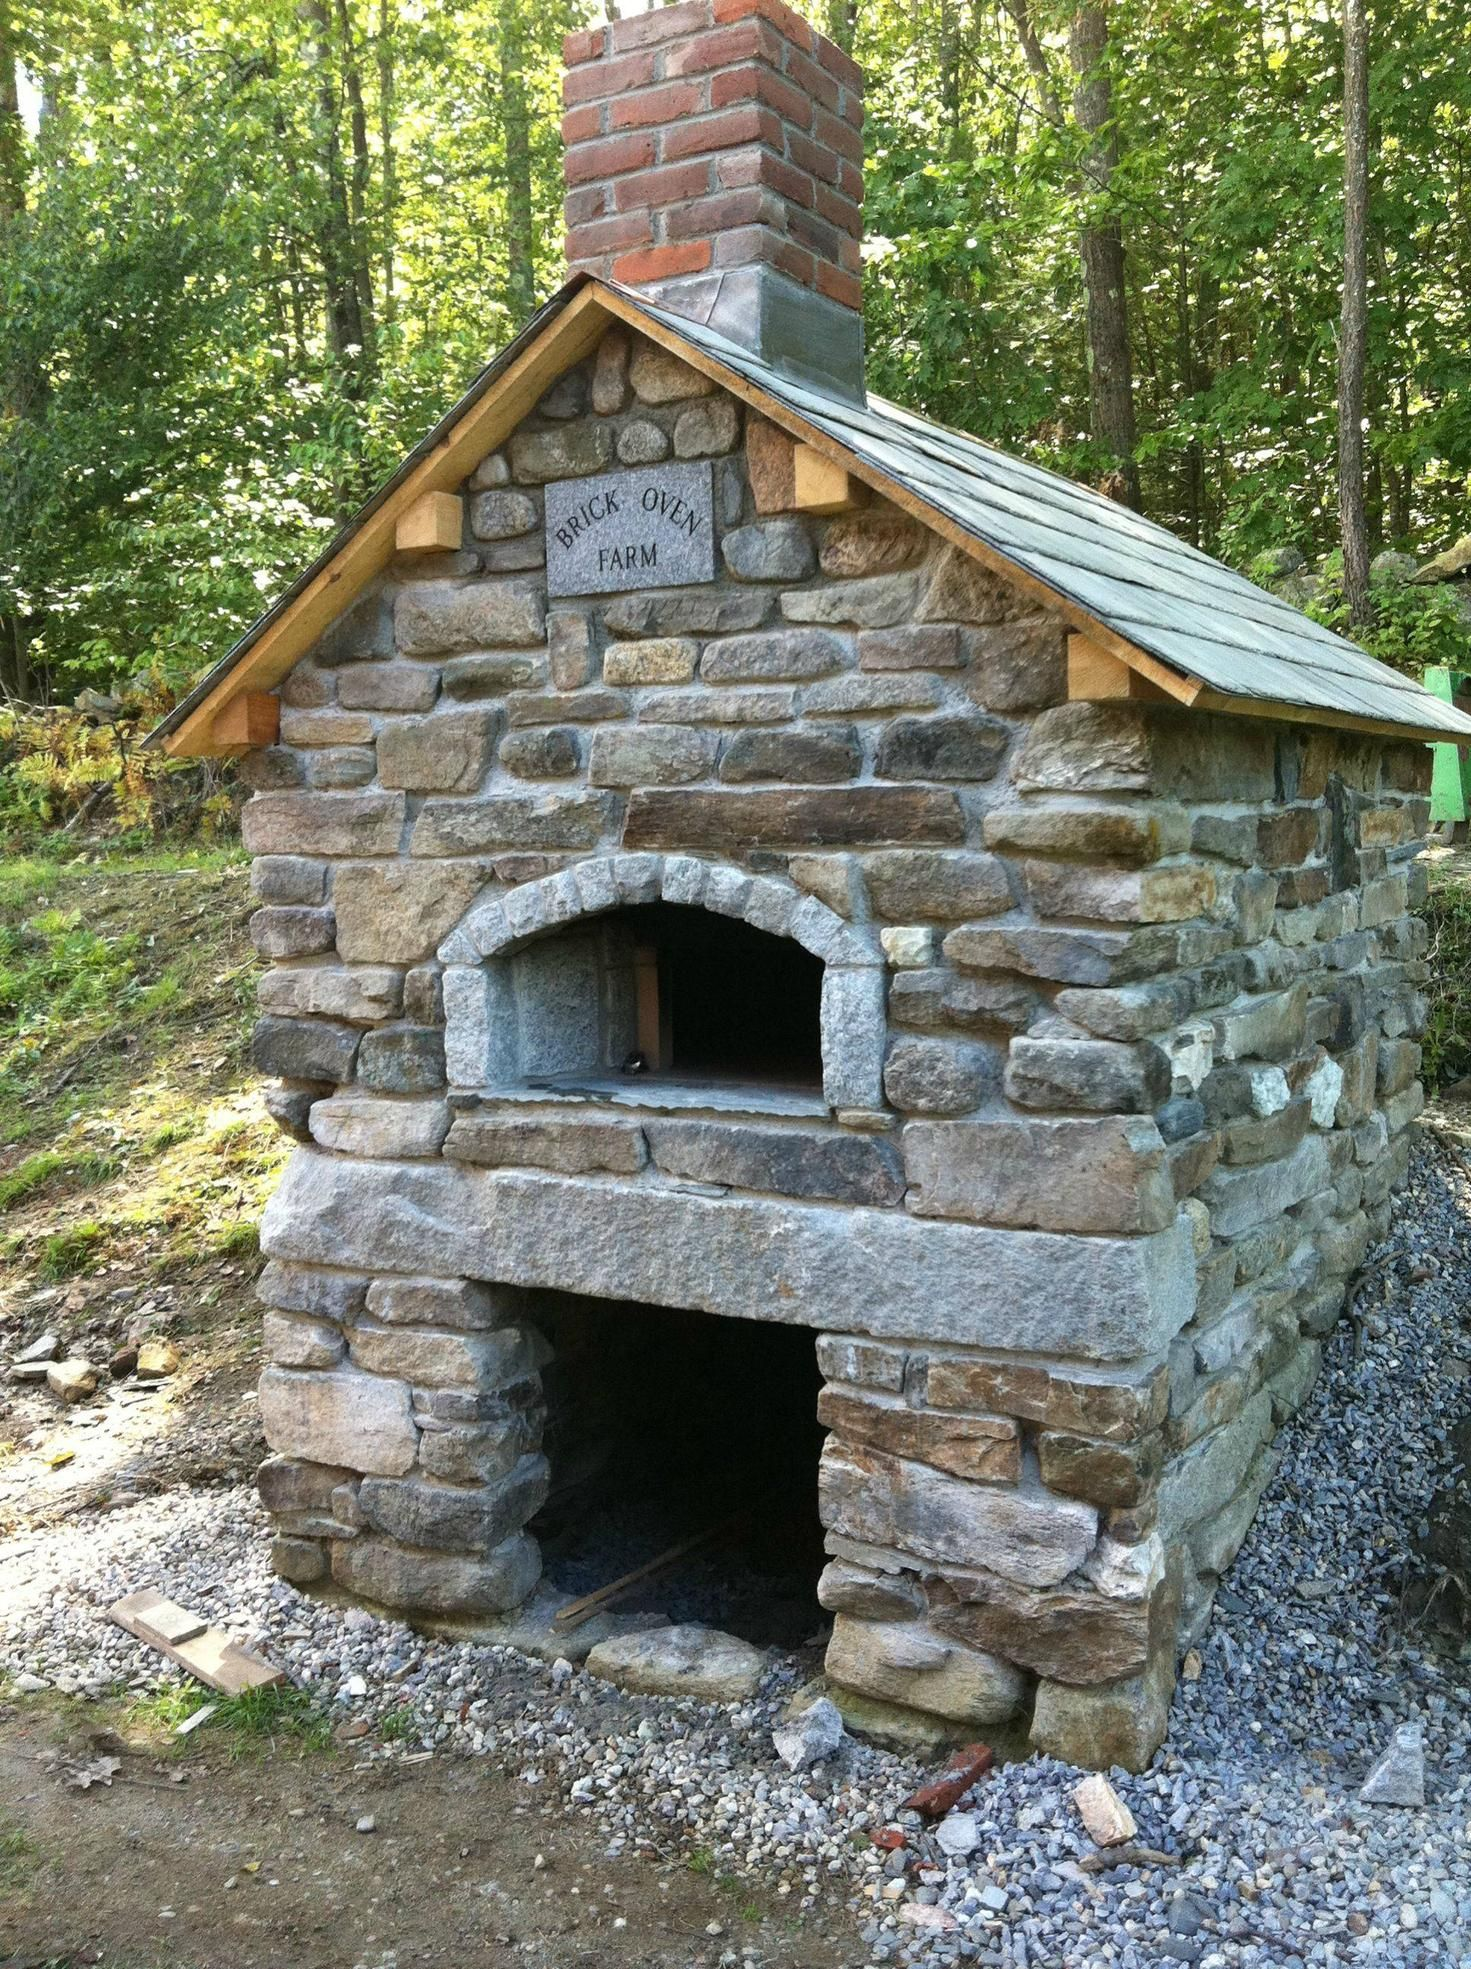 A brick oven my fatherinlaw built for his organic farm